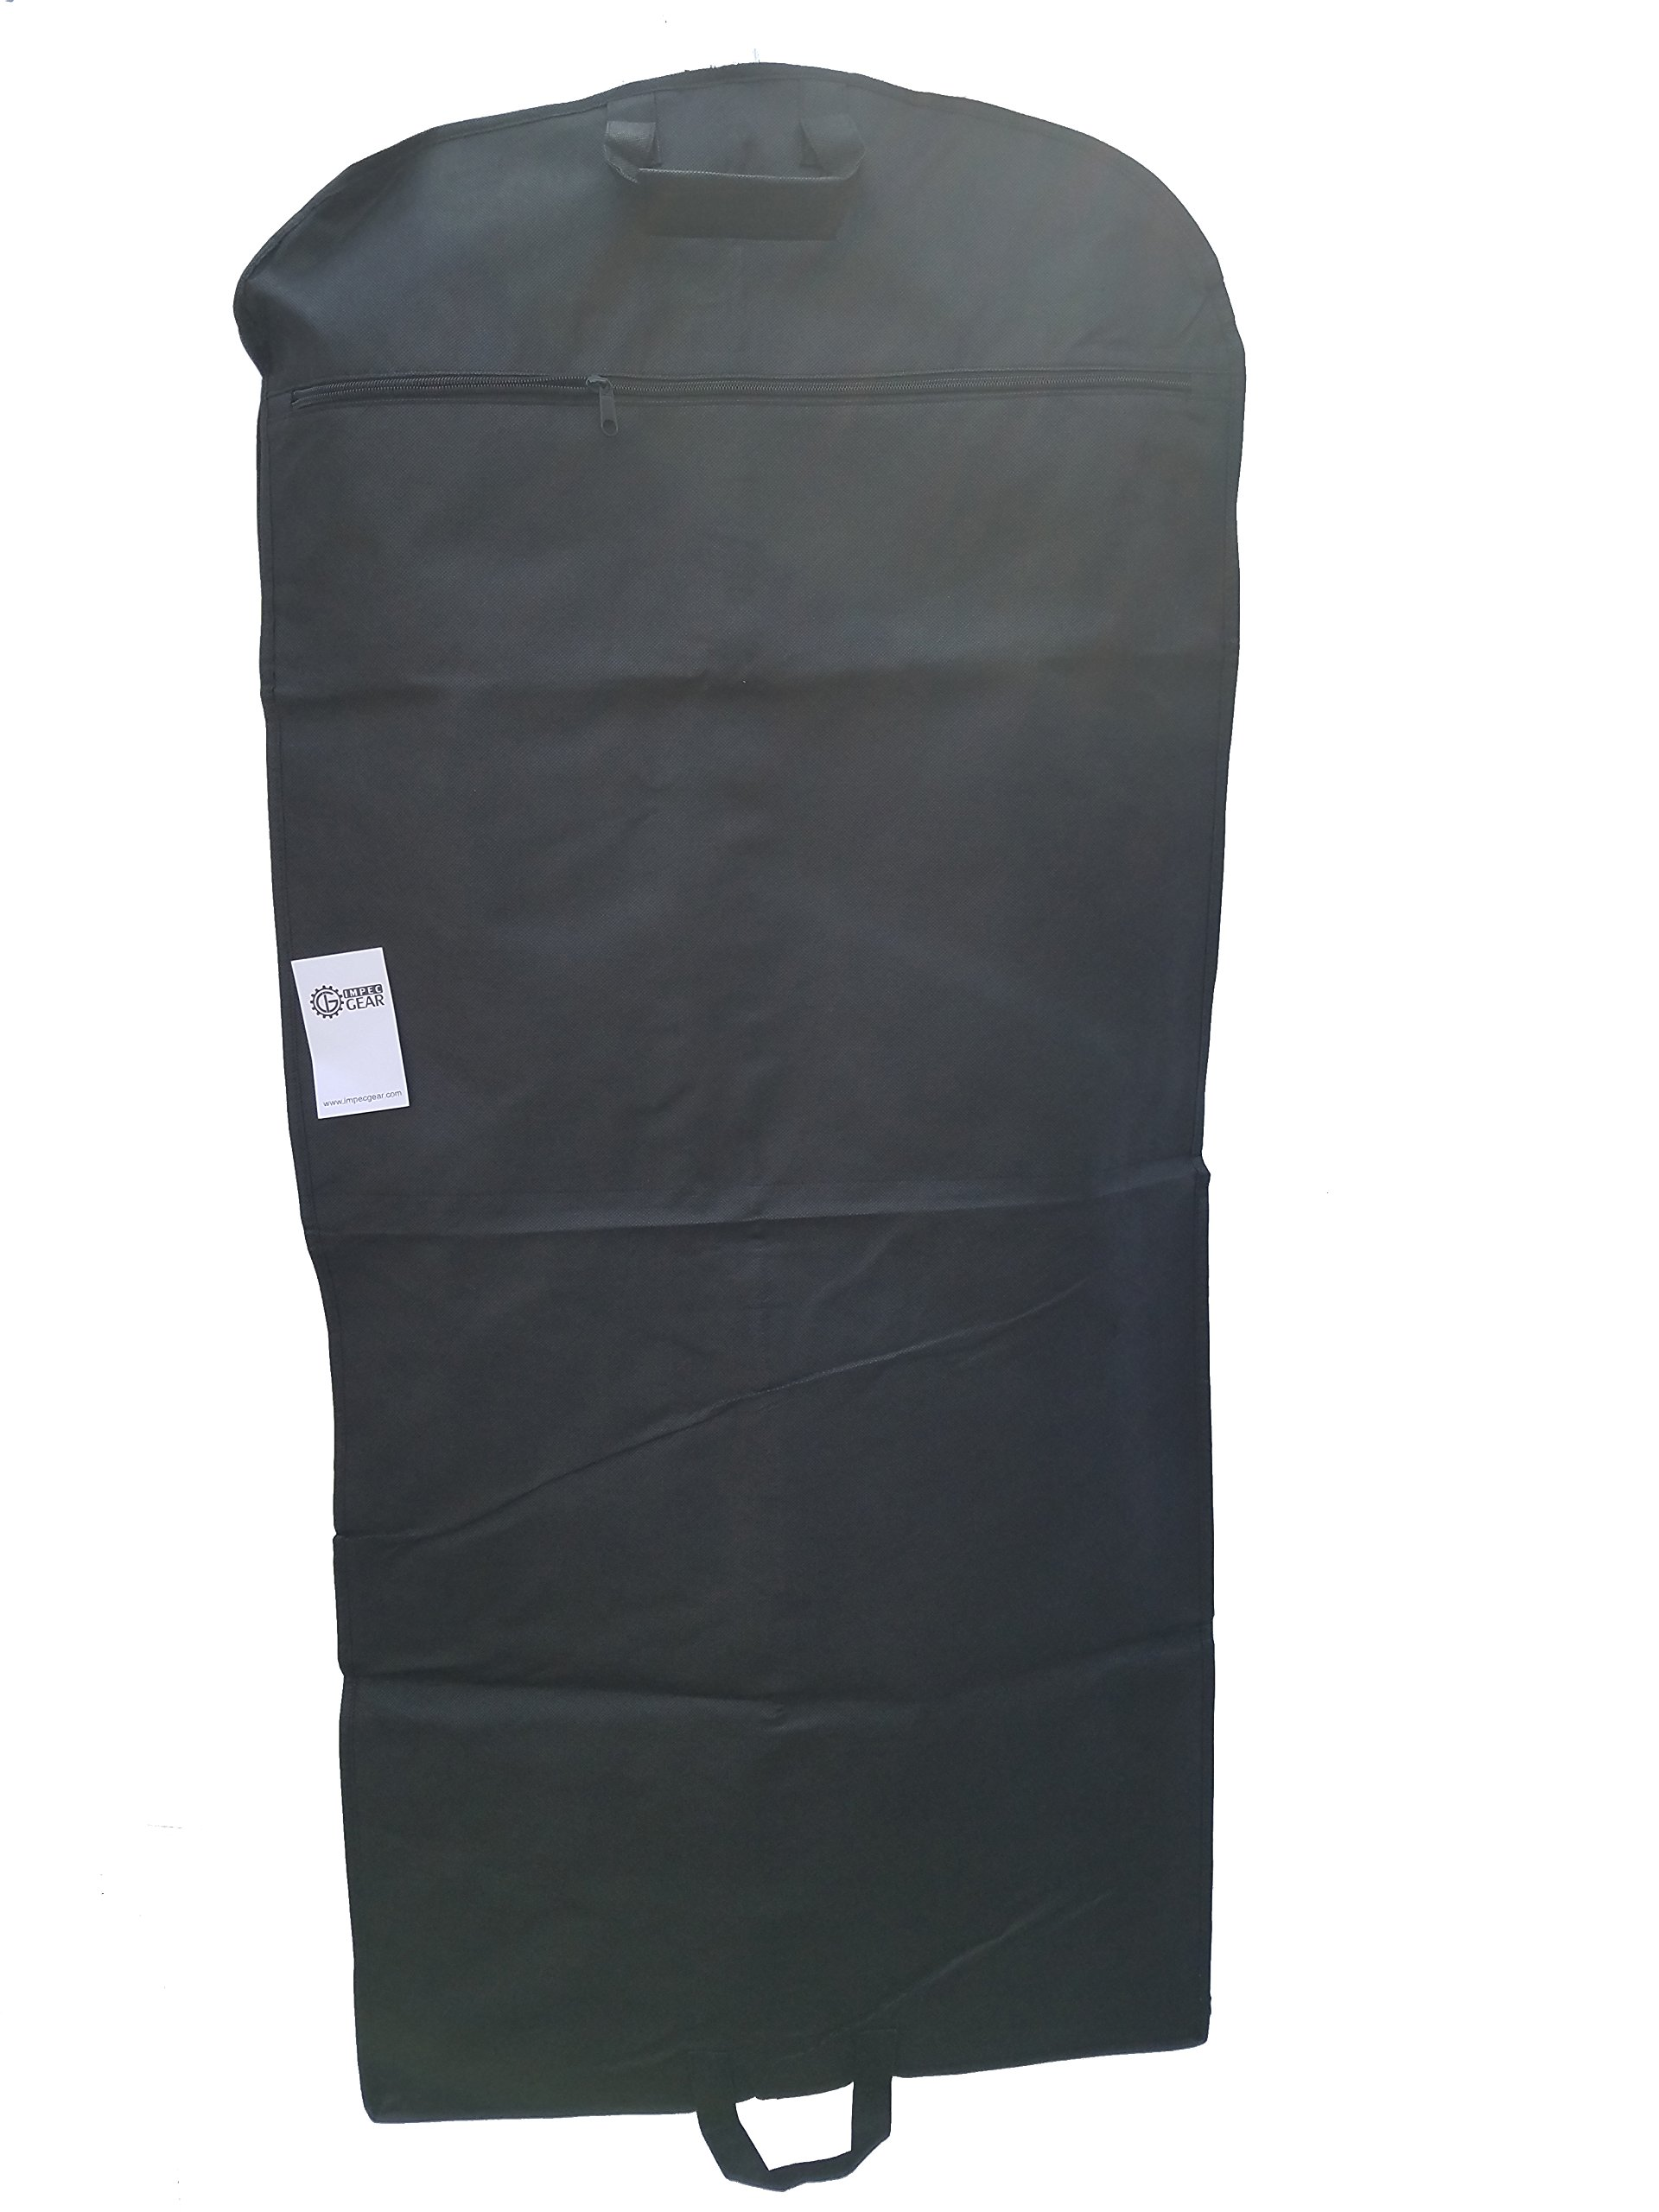 NEW 48'' Breathable Gusseted Travel Garment Bag Cover - For Suits Dress, Clothes, Tux, Jersey Storage Travel (1 PACK) by ImpecGear (Image #6)